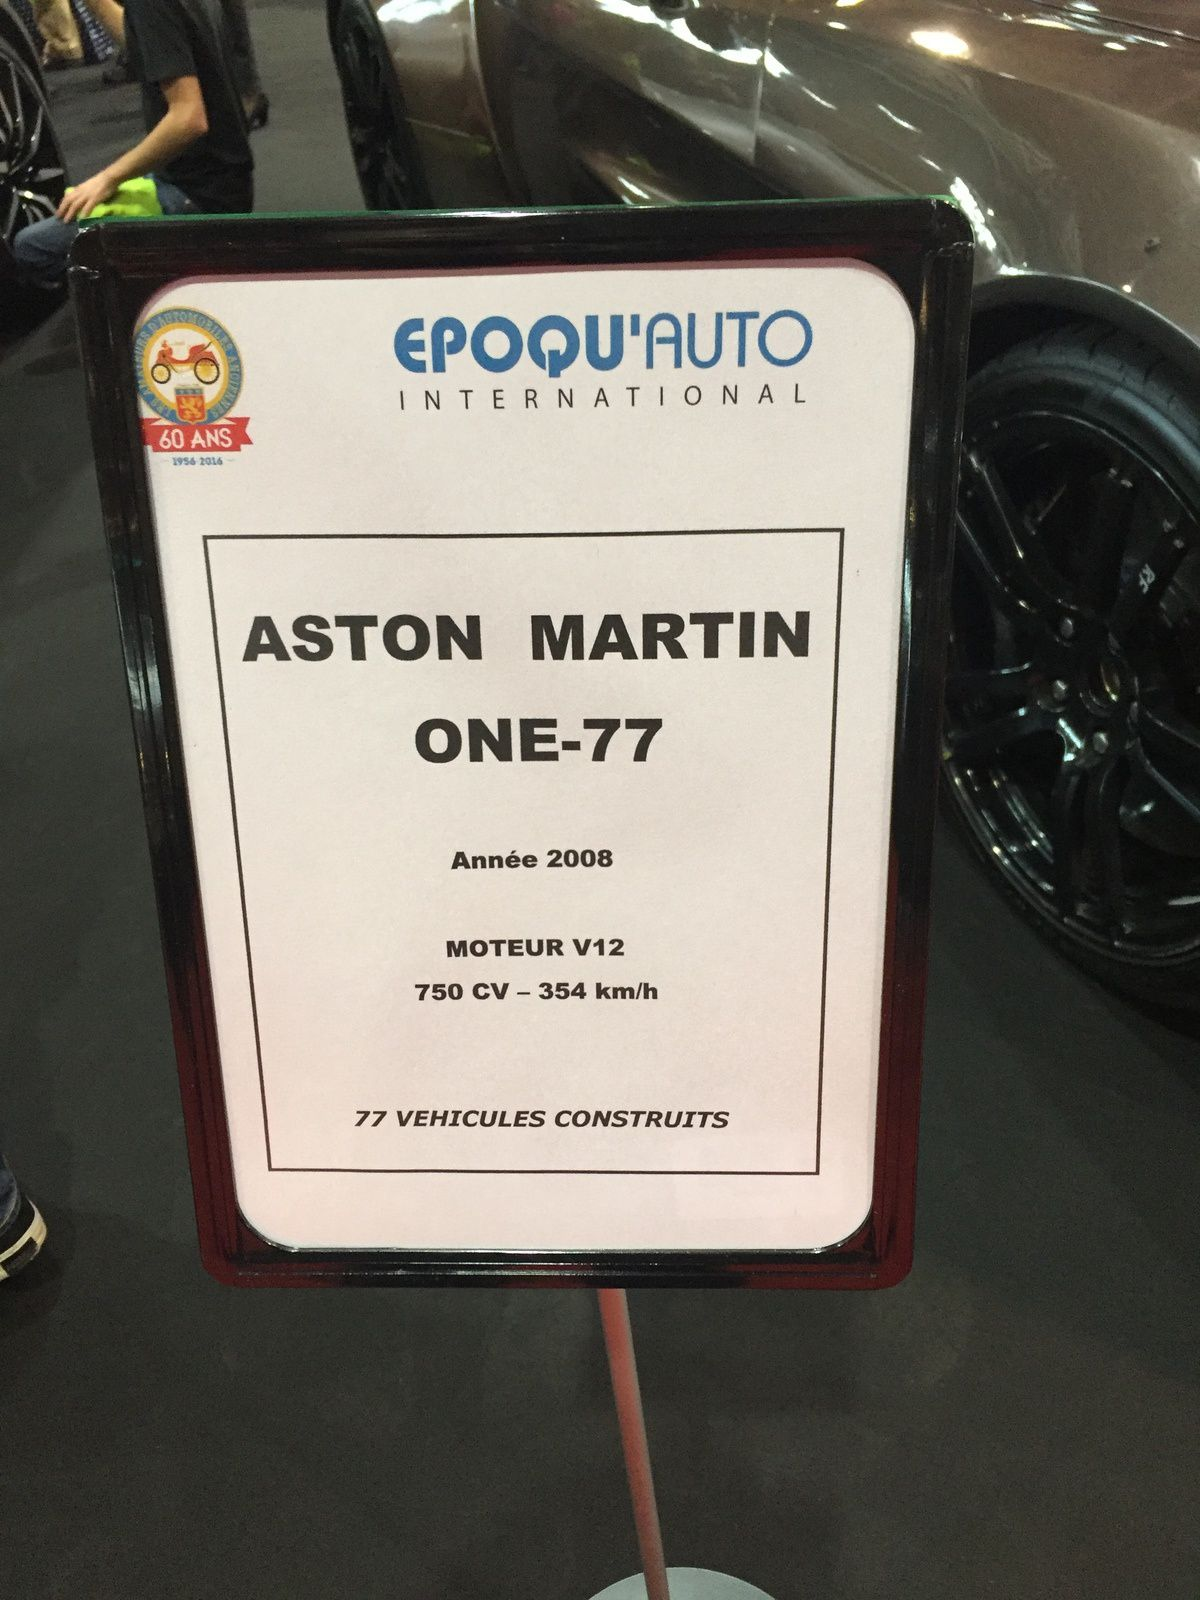 Salon EPOQ'AUTO 2016 - Exposition Aston Martin